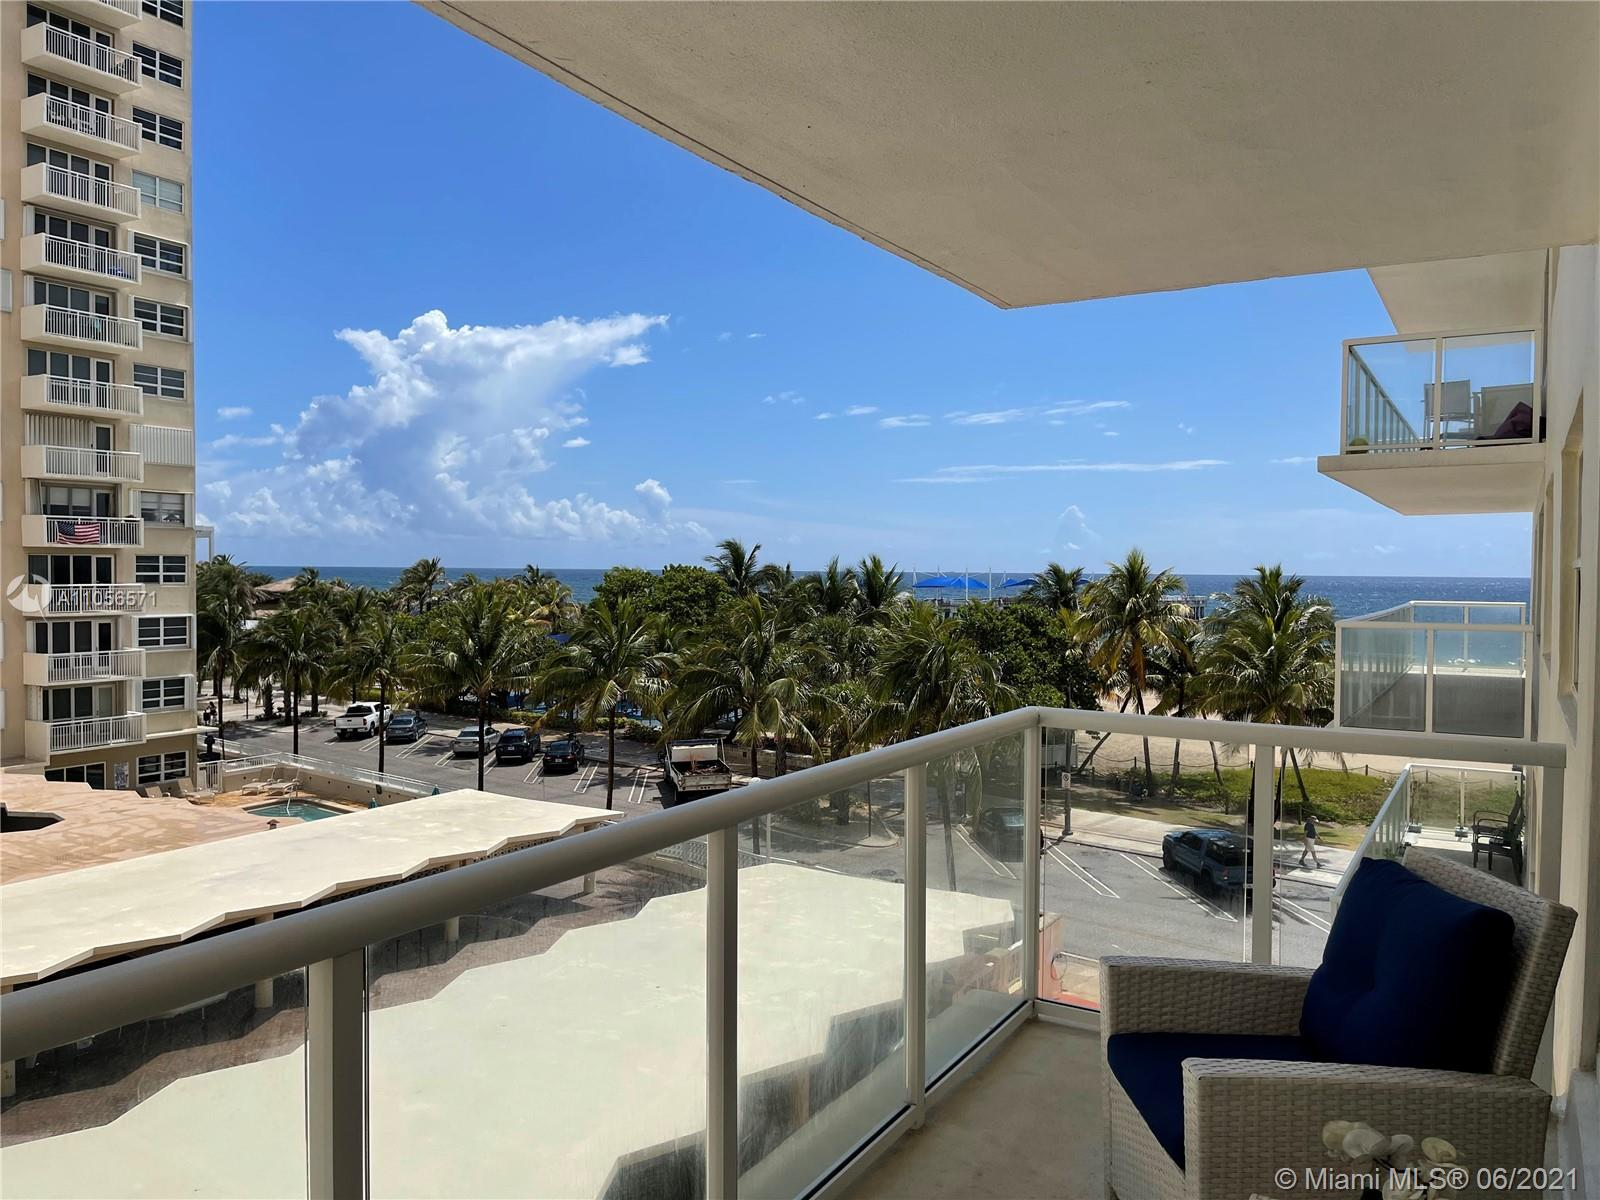 """AMAZING VIEWS FROM THIS UNIT, IN ONE OF THE BEST BUILDINGS IN THE POMPANO BEACH AREA """" SEA MONARCH"""", GREAT LOCATION FACING NORTH AND EXTRAORDINARY PLACES FOR ENTERTAINMENT, RESTAURANTS, THE POMPANO BEACH PIER OPEN TO THE PUBLIC AND RESIDENTS PERFECT FOR FISHING. SOON TO BE OPEN NEW HOTEL WITH ROOF TOP BAR . THE OVERSIZED BALCONY LETS YOU ENJOY THE MORNINGS WATCHING THE SUNRISE AND AMAZING EVENING SUNSETS IN THE AFTERNOON!!! COMPLETELY REMODELED LOBBY AND COMMON AREAS, GYM , SAUNA, LIBRARY ROOM WITH TECHNOLOGY CENTER, PARTY SALON WITH KITCHEN ON SITE, TV AVAILABLE FOR RESIDENTS IN THE PARTY SALON, GAME ROOM. YOU HAVE WIFI INTERNET AVAILABLE ON THE LOBBY AND COMMON AREAS. TV AND WIFI INTERNET IS INCLUDED IN MAINTENANCE FEE, SERVICE IS PROVIDED BY HOTWIRE FIBER OPTIC LAST TECHNOLOGY."""